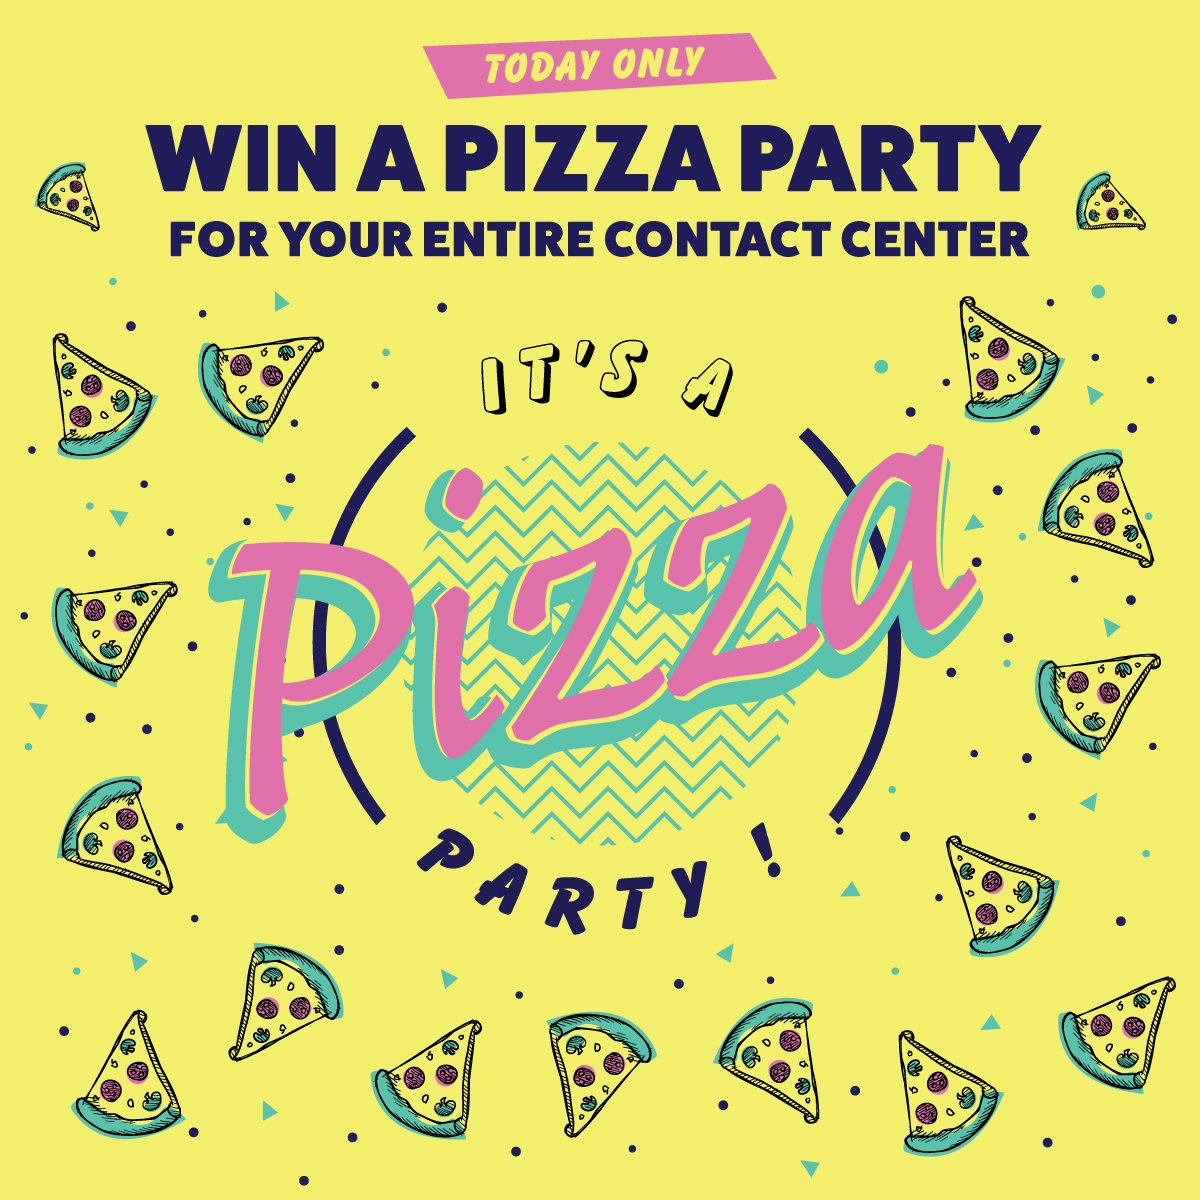 To everyone asking if this is an early April Fools Day prank... NO. We're really giving away a pizza party to an entire contact center team as part of our 10th anniversary.    https:// blog.contactcenterpipeline.com/10th-anniversa ry-pizza-party/  …   #FridayMotivation #FridayFeeling #FridayThoughts #cctr #cx #FreePizzaFriday <br>http://pic.twitter.com/gkewBhXMzO